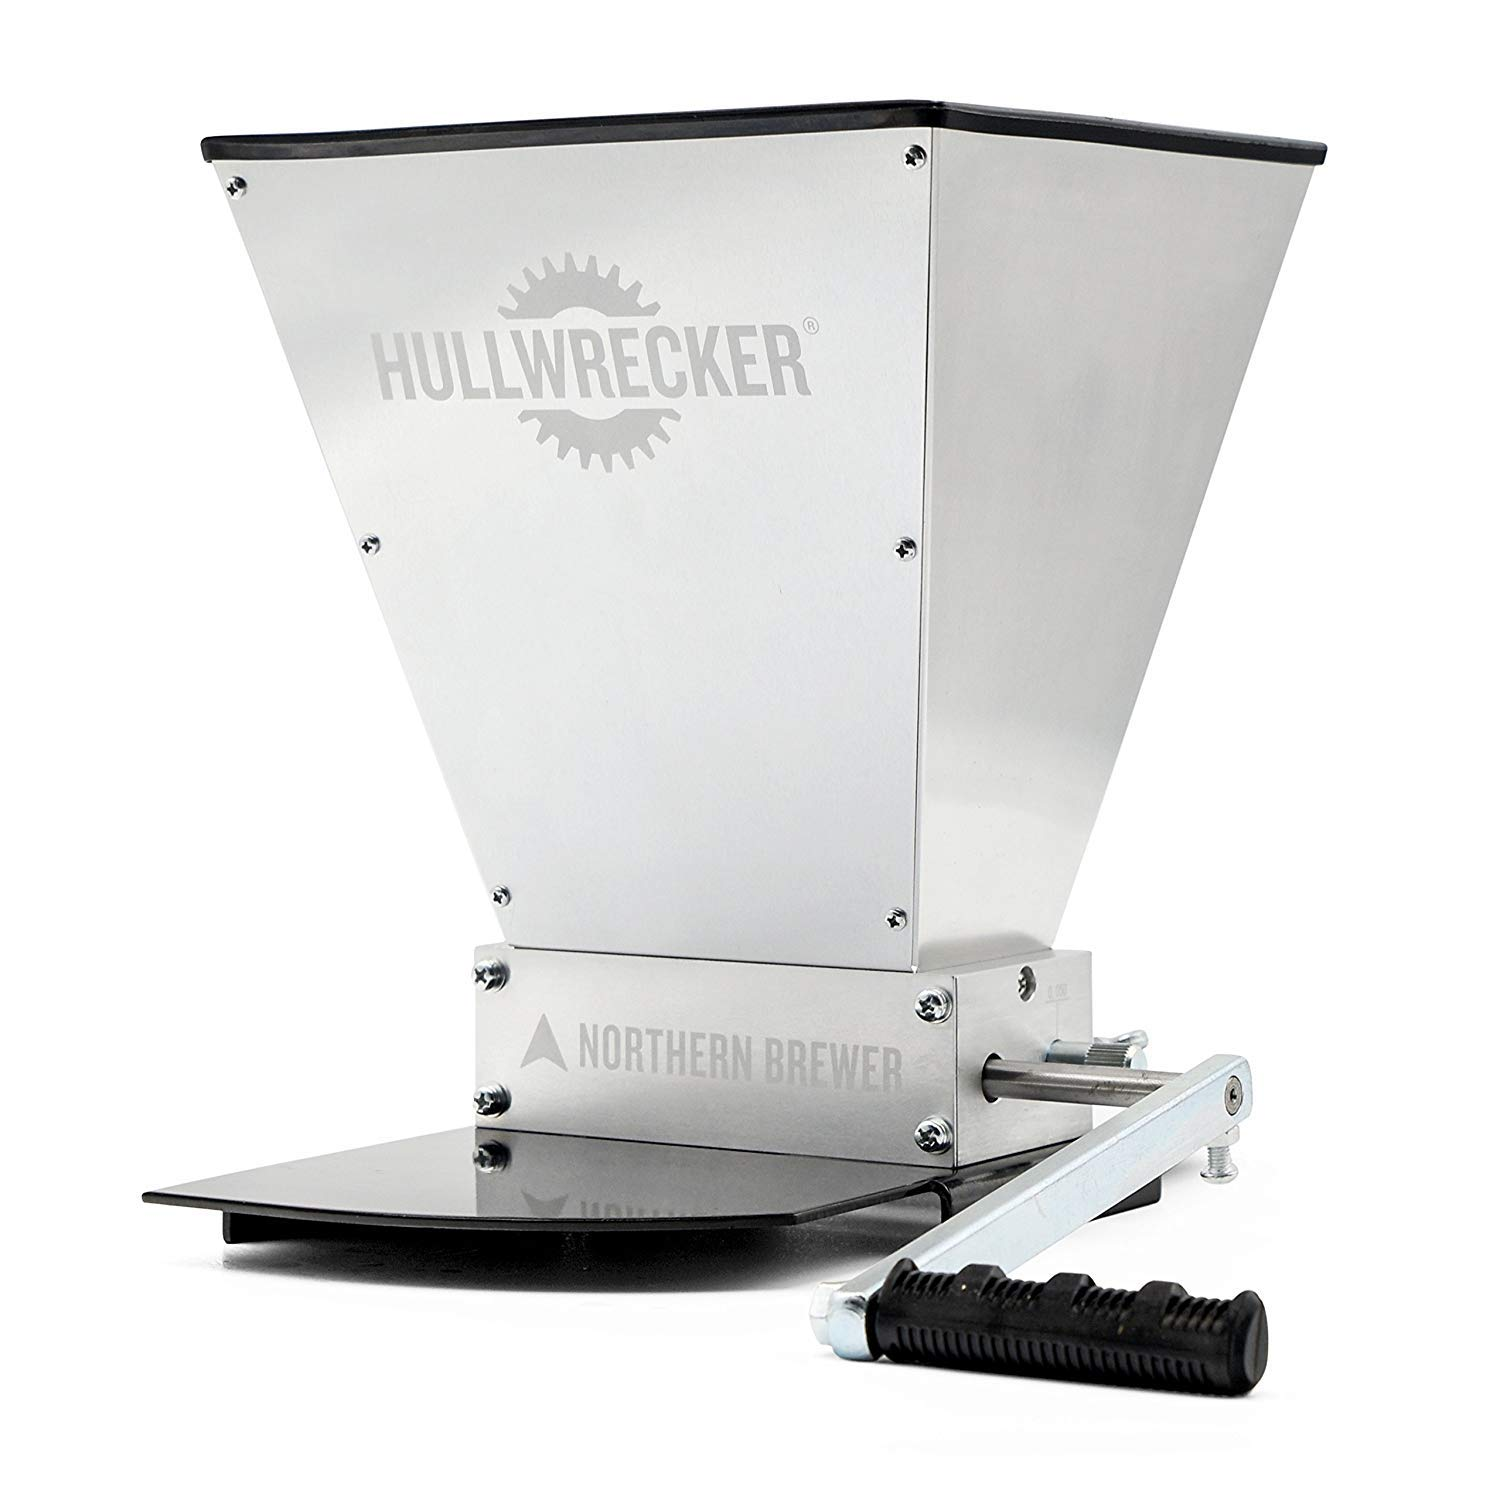 Northern Brewer - Hullwrecker 2-Roller Grain Mill with Metal Base and Handle by Northern Brewer